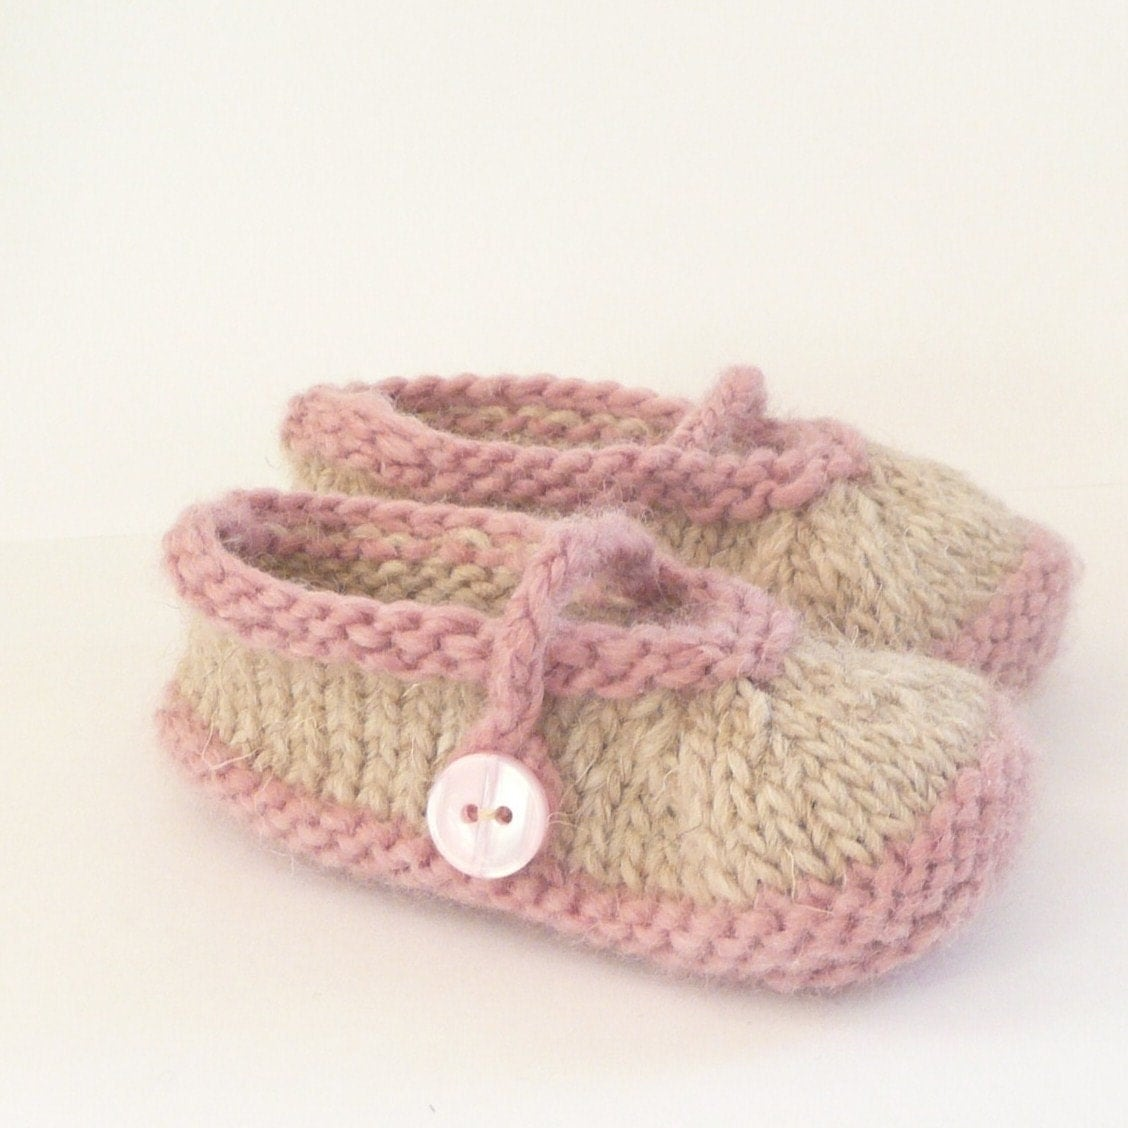 Simple Bootie Knitting Pattern : Knitting PATTERN BABY Booties Simple Seamless Mary Janes